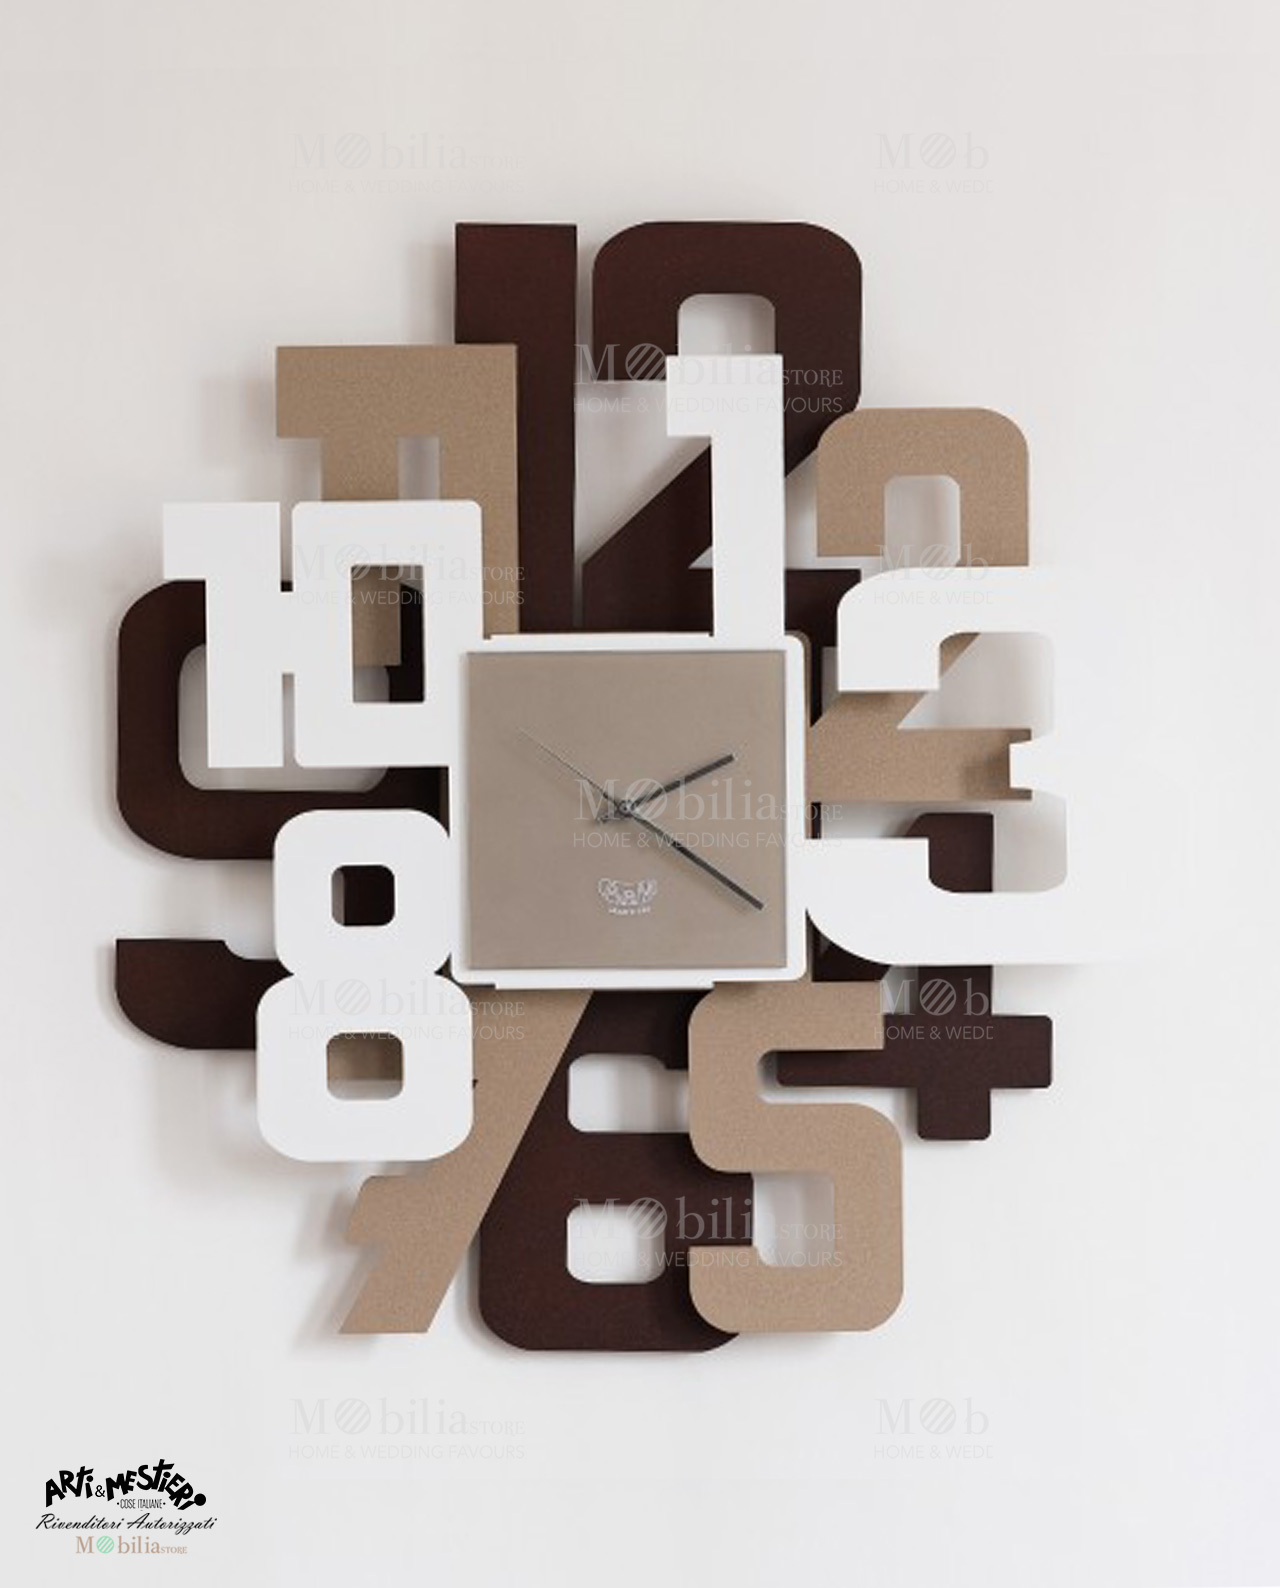 Beautiful Orologi Moderni Da Cucina Contemporary - Design & Ideas ...